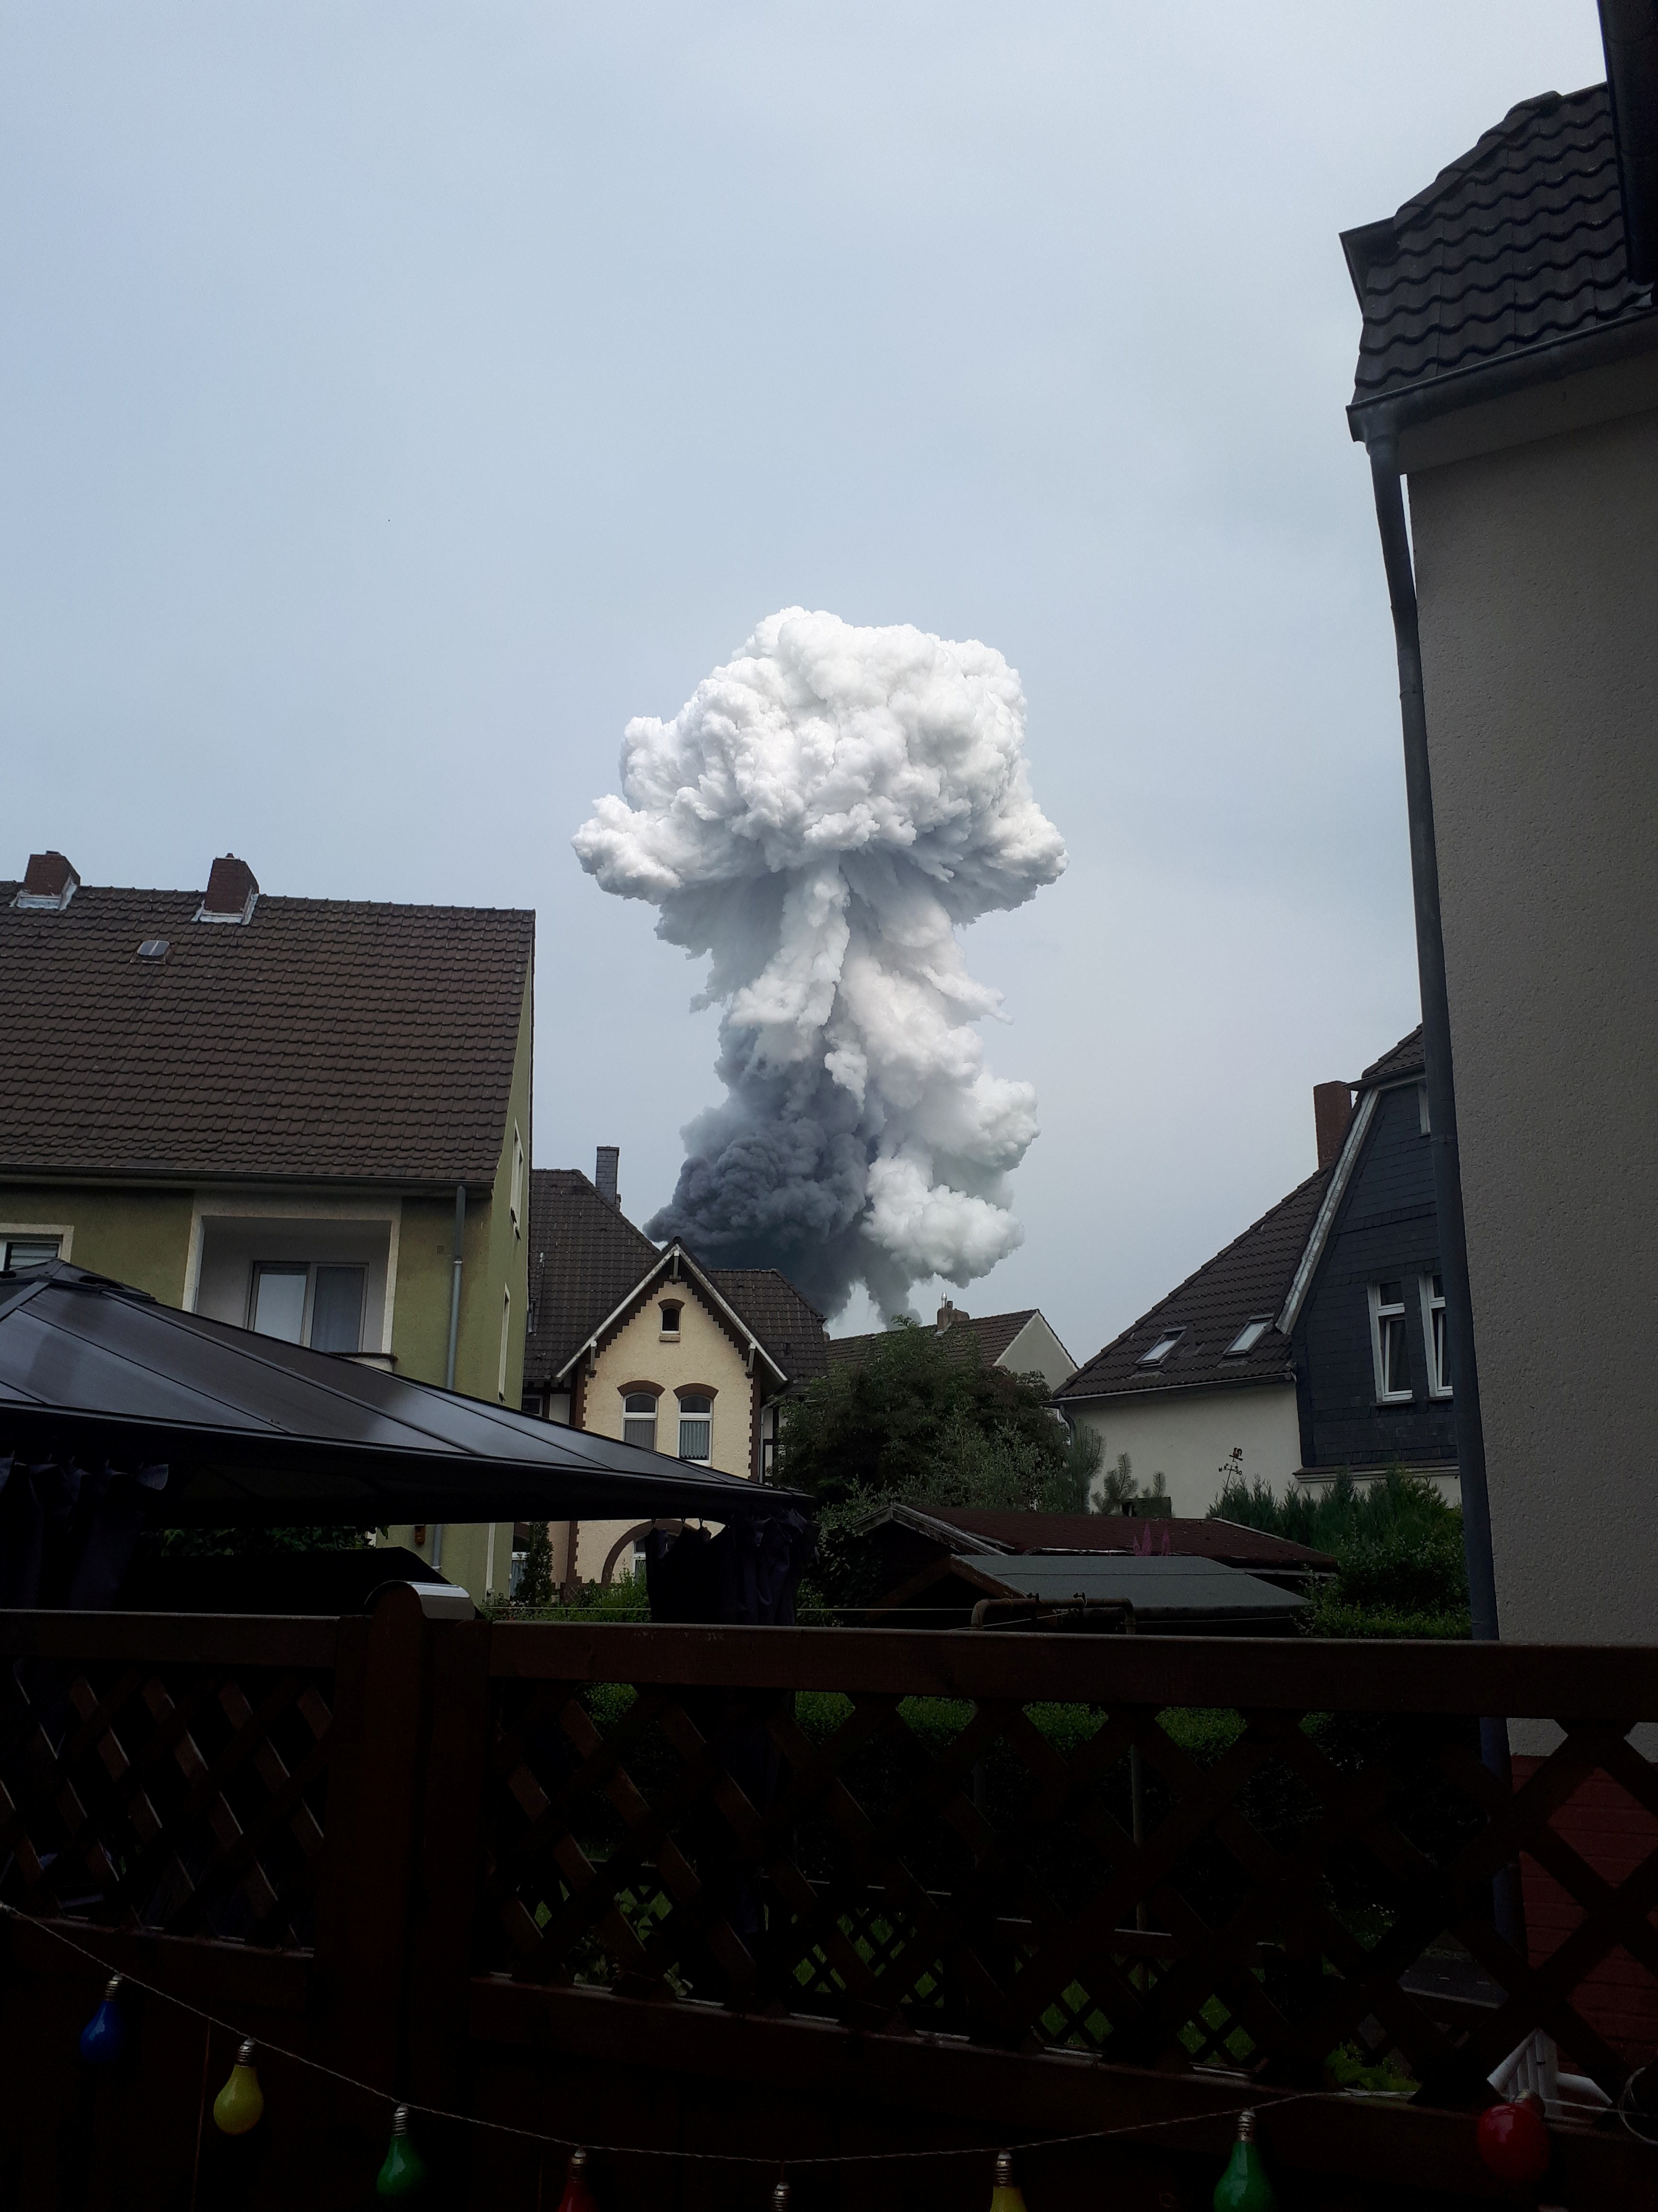 Smoke billows following an explosion in Wiesdorf, Leverkusen, Germany July 27, 2021, in this photo obtained from social media.   Anna Fross/via REUTERS